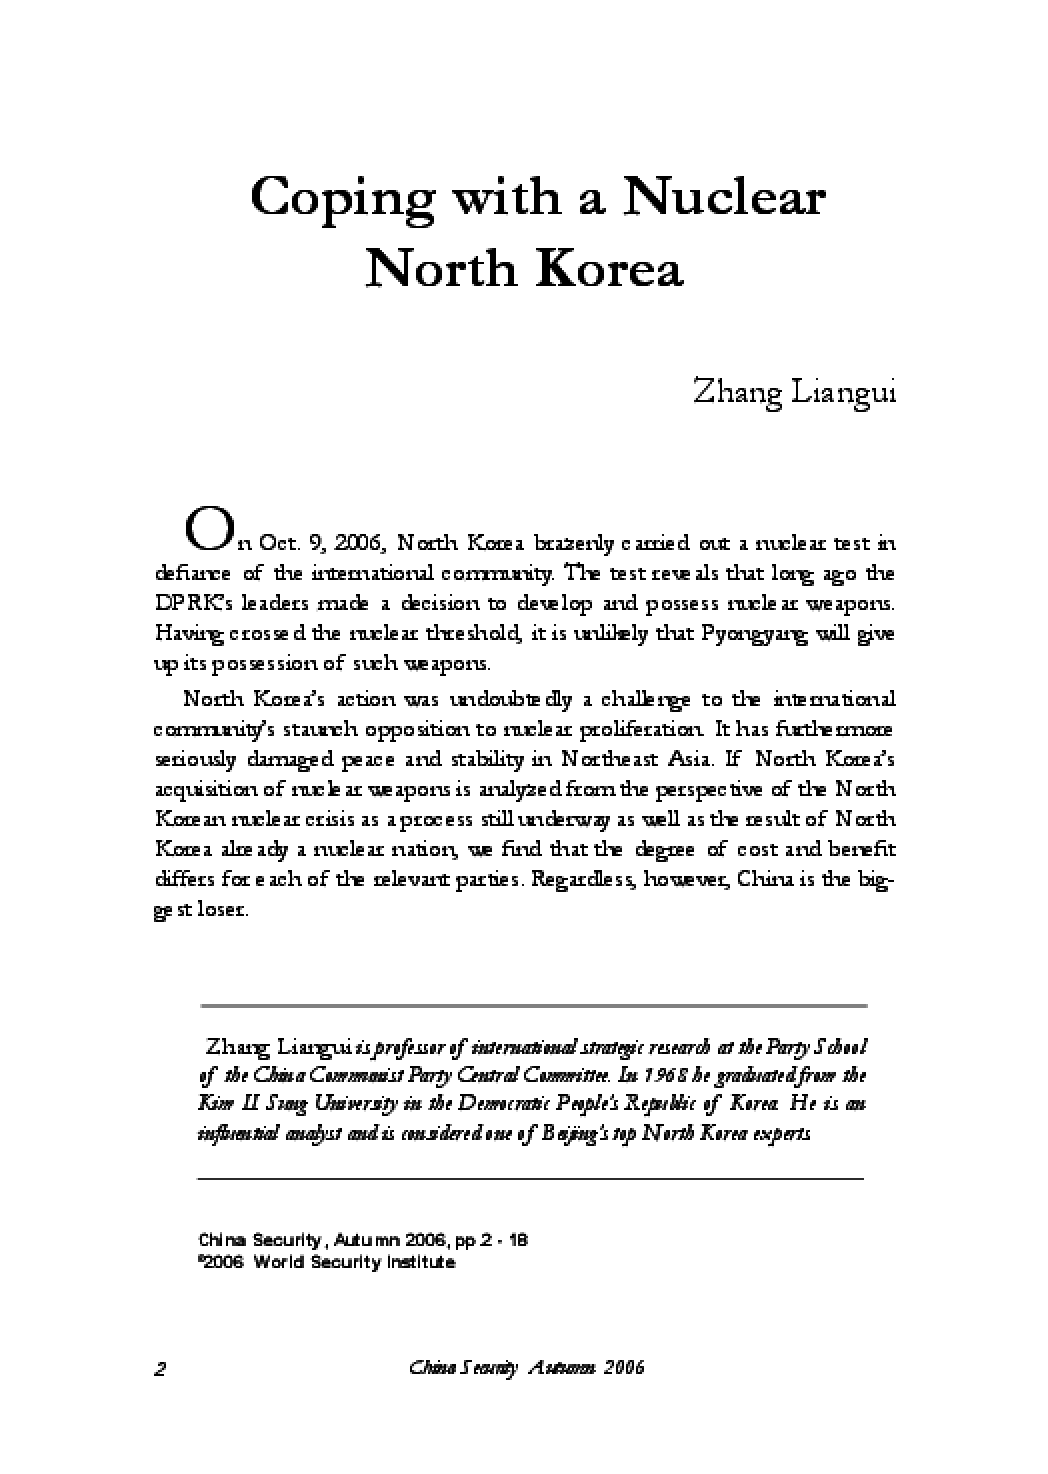 Coping with a Nuclear North Korea